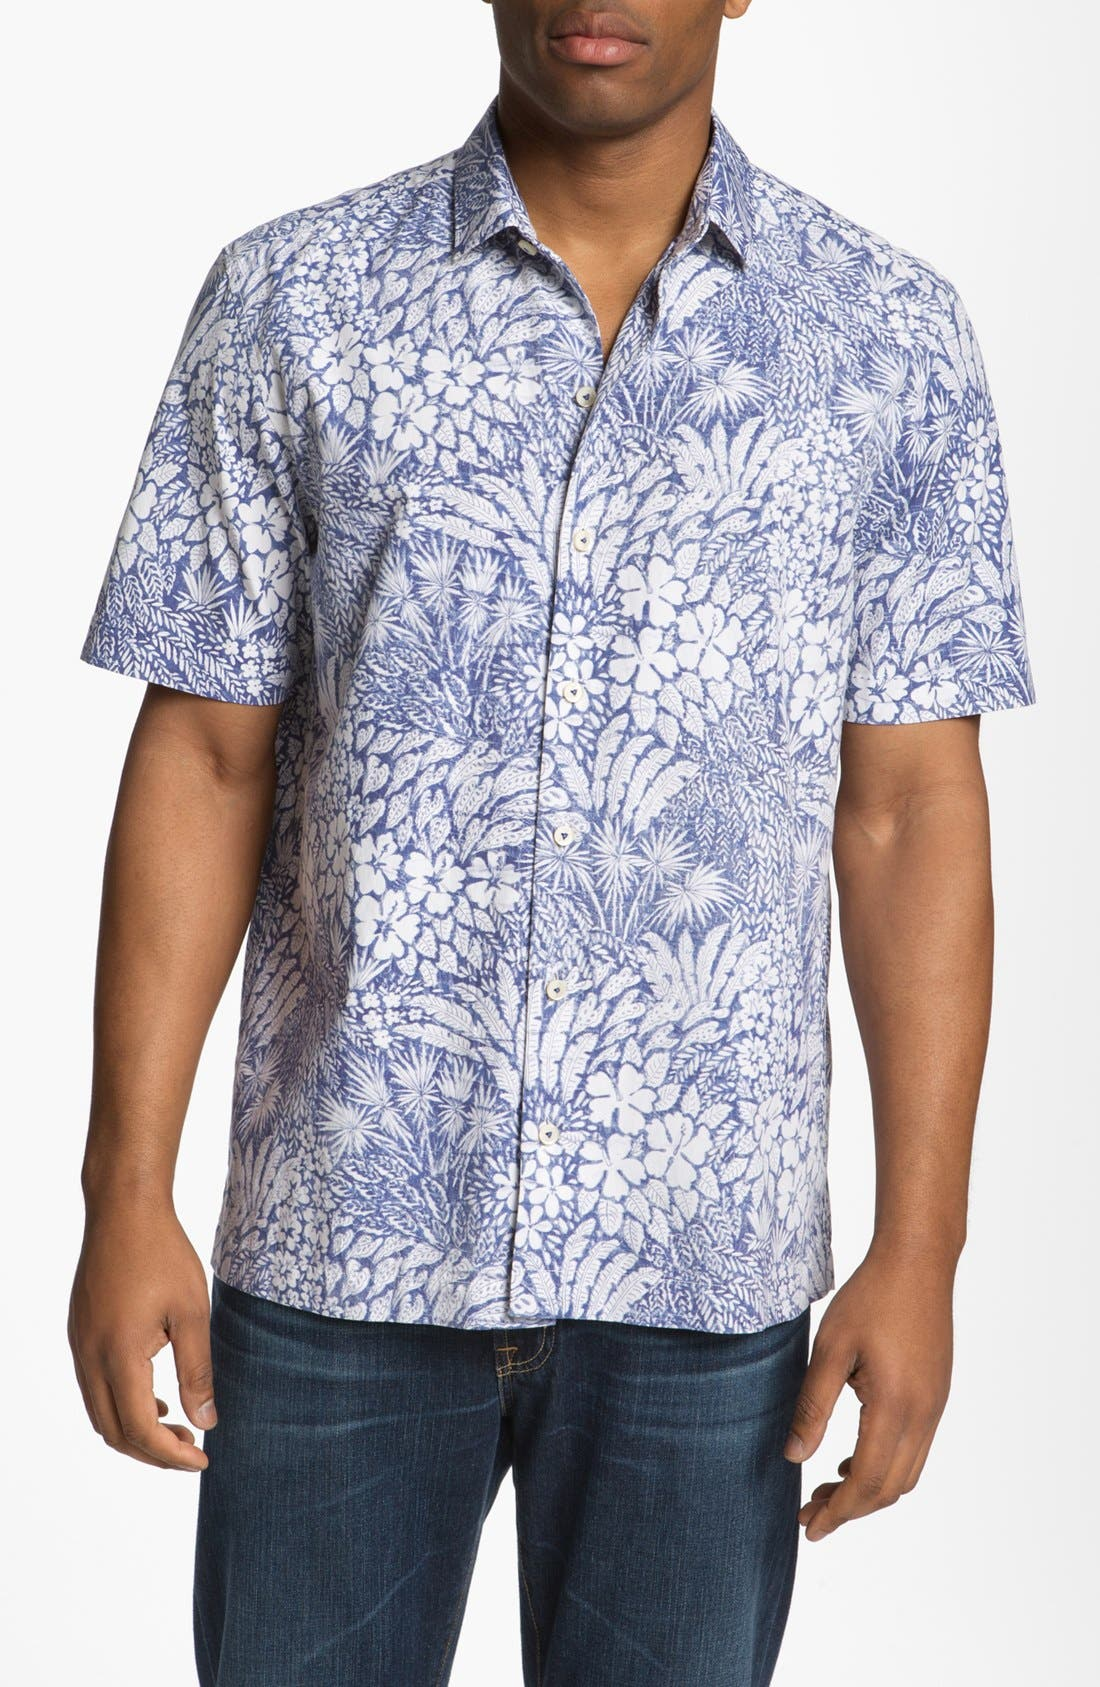 Alternate Image 1 Selected - Tommy Bahama 'Grove Is in the Heart' Silk Blend Campshirt